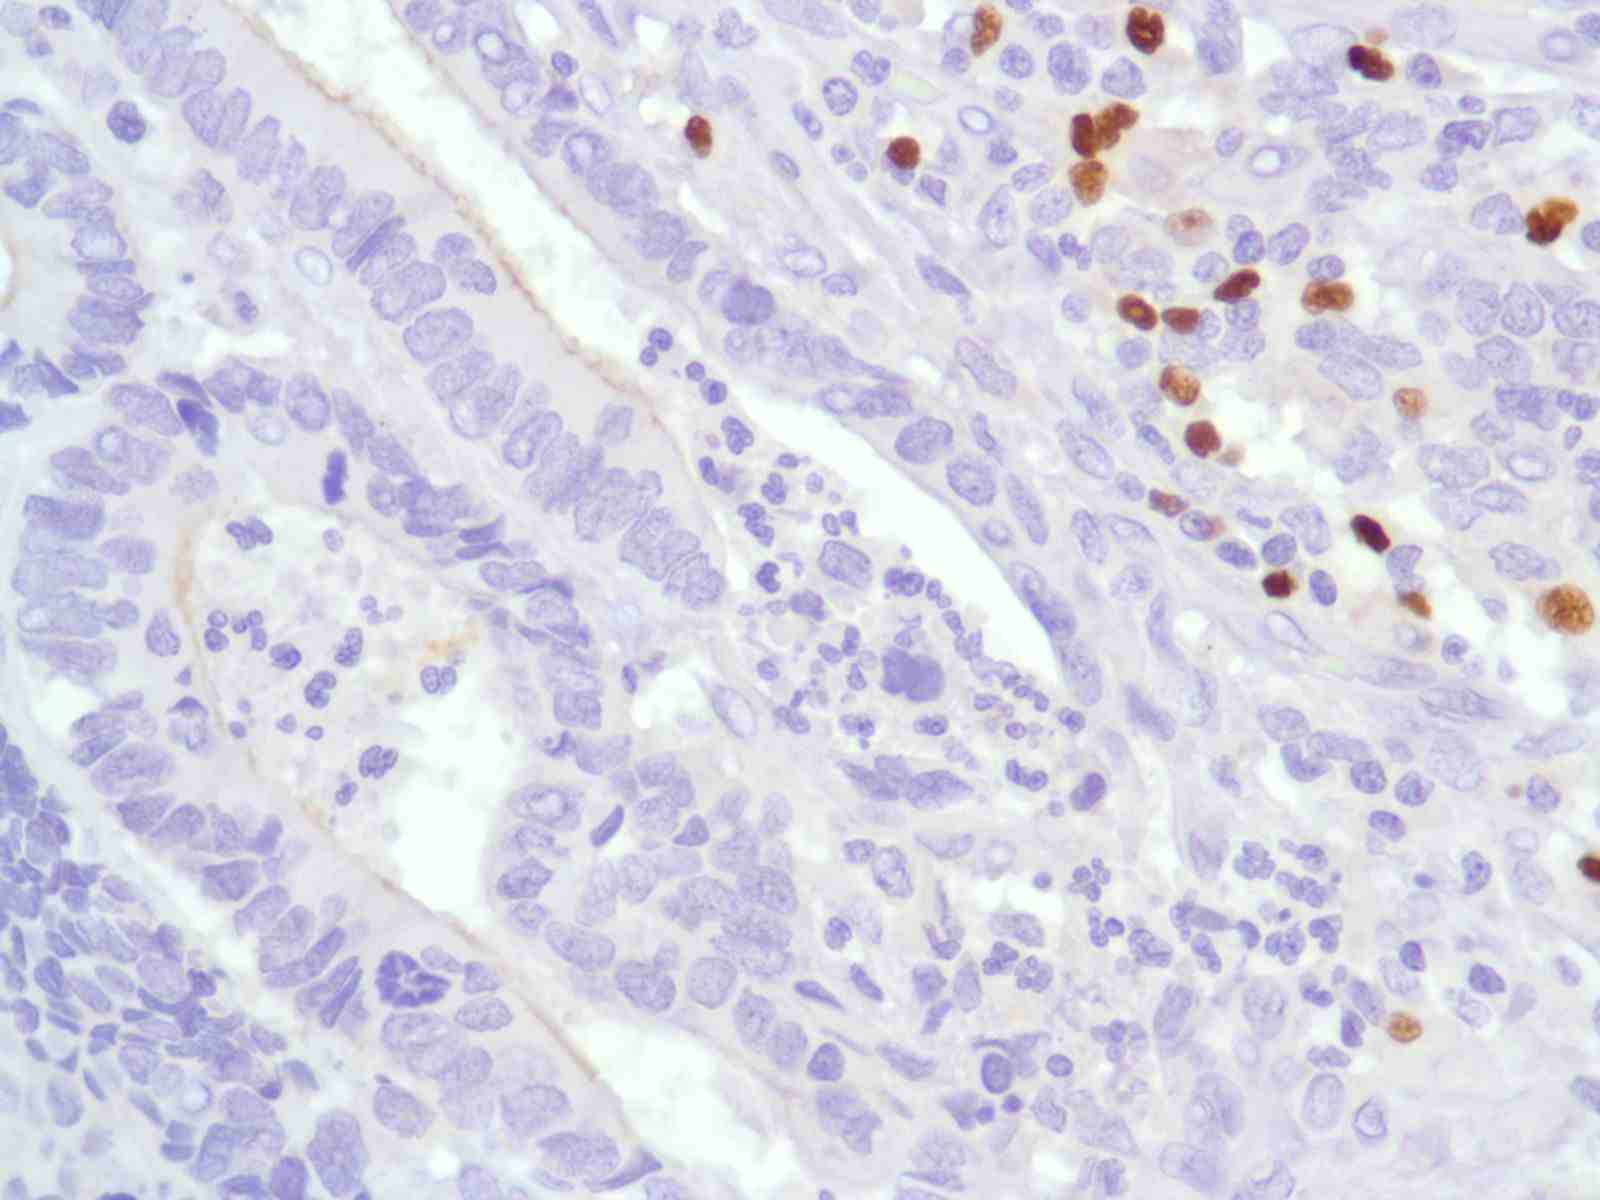 Human Colon Adenocarcinoma stained with anti-FoxP3 antibody